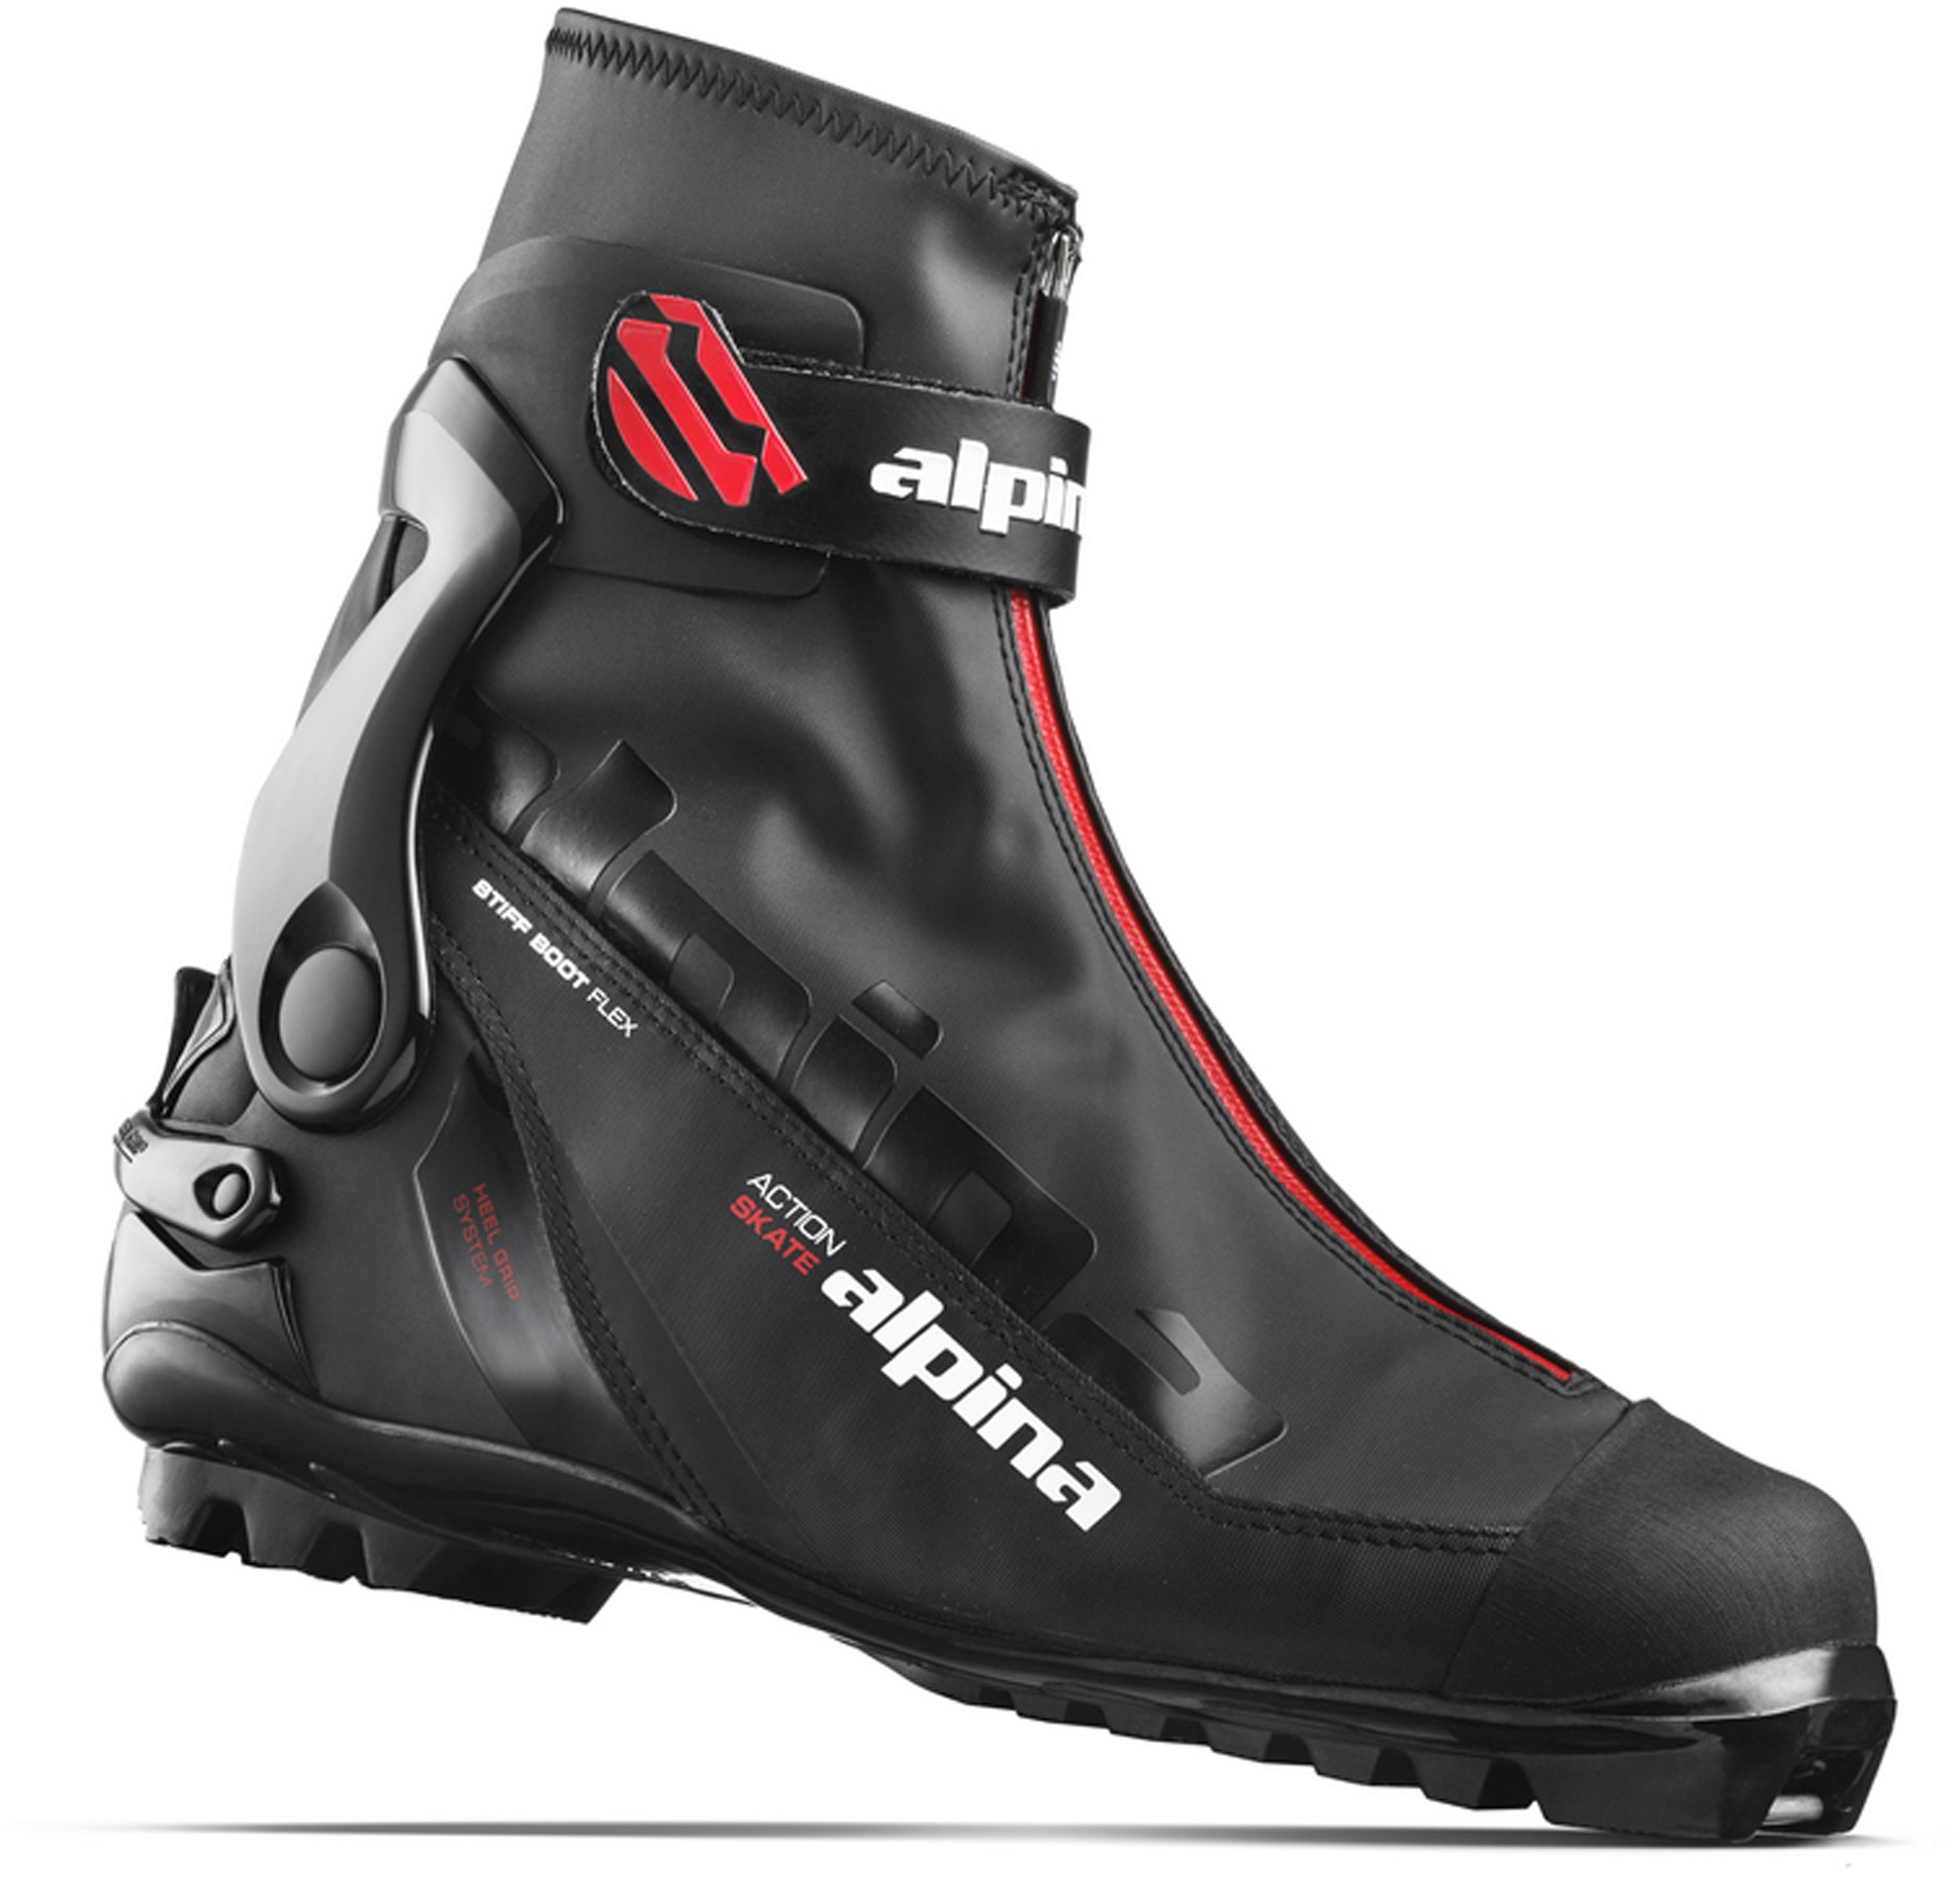 Alpina Sports Ask Skate Cross Country Skate Ski Boots, Euro 42, Black/Red by Alpina